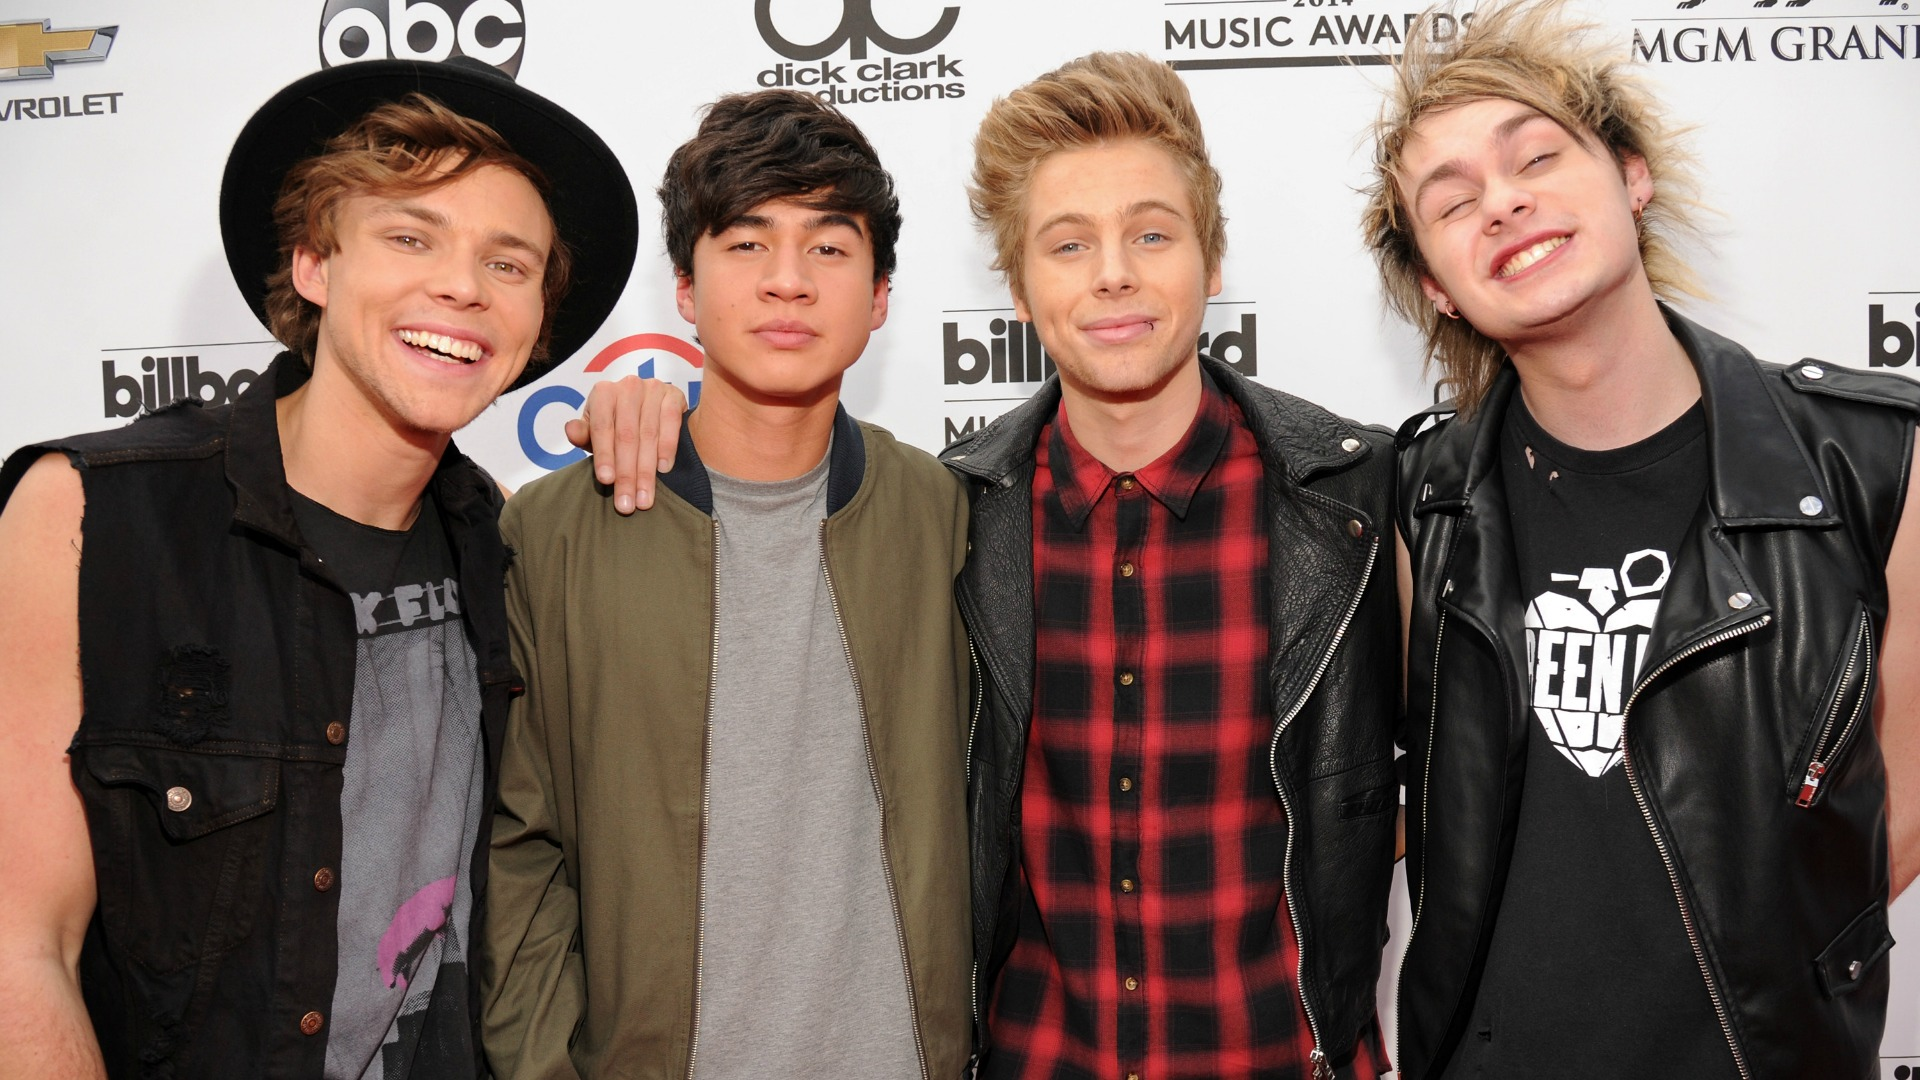 5 Seconds Of Summer Perform On The Today Show